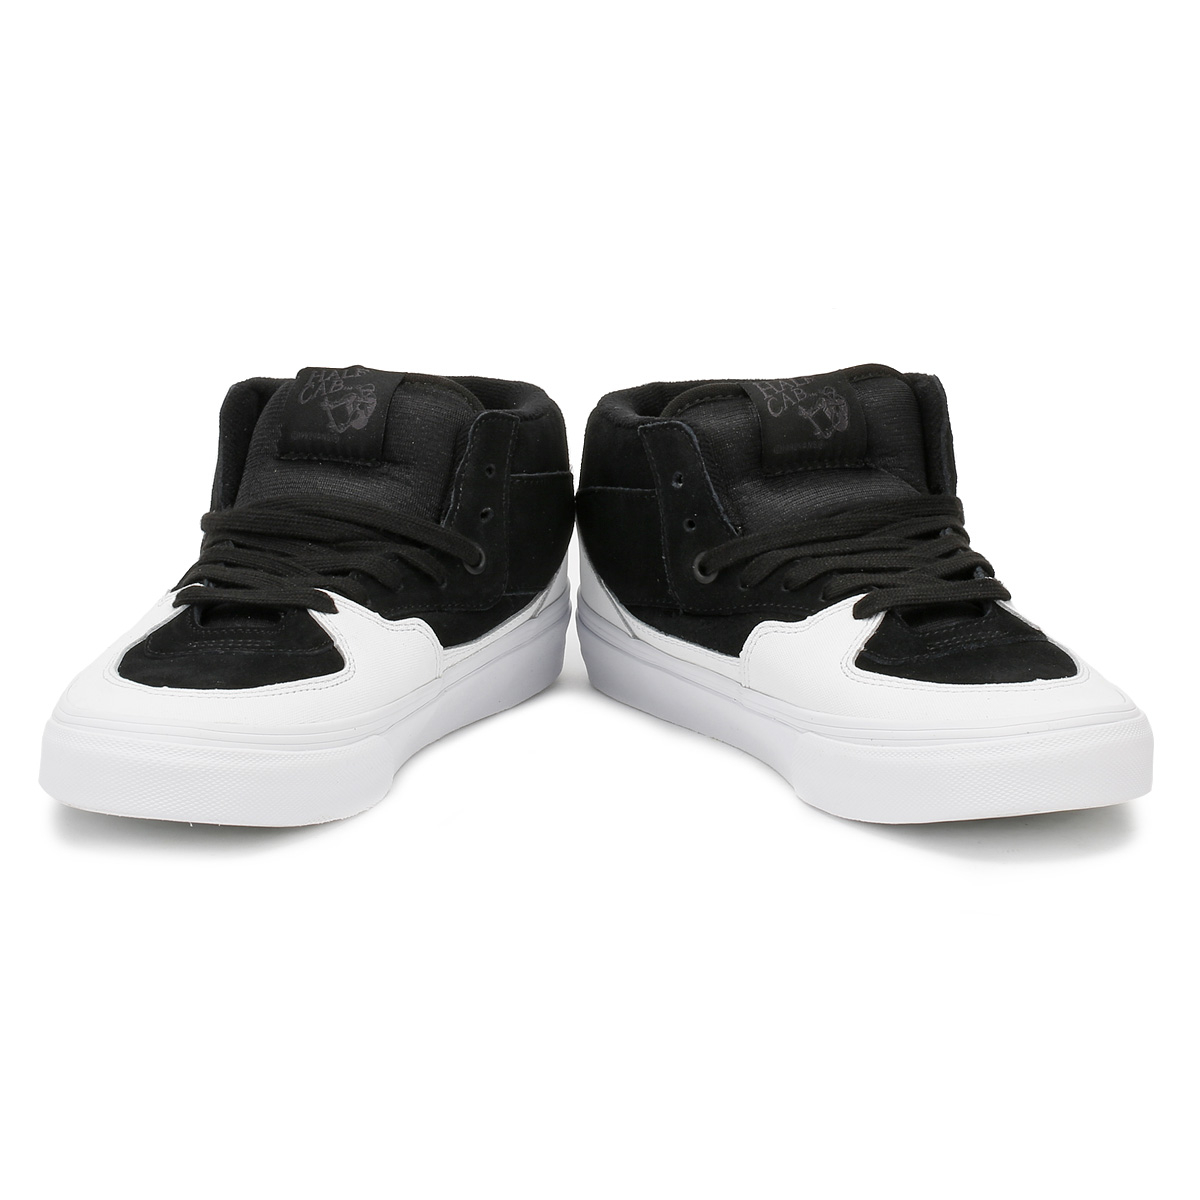 5306bedf14 Vans Mens Trainers Dipped Black   True White Half Cab Lace Up Skater Shoes